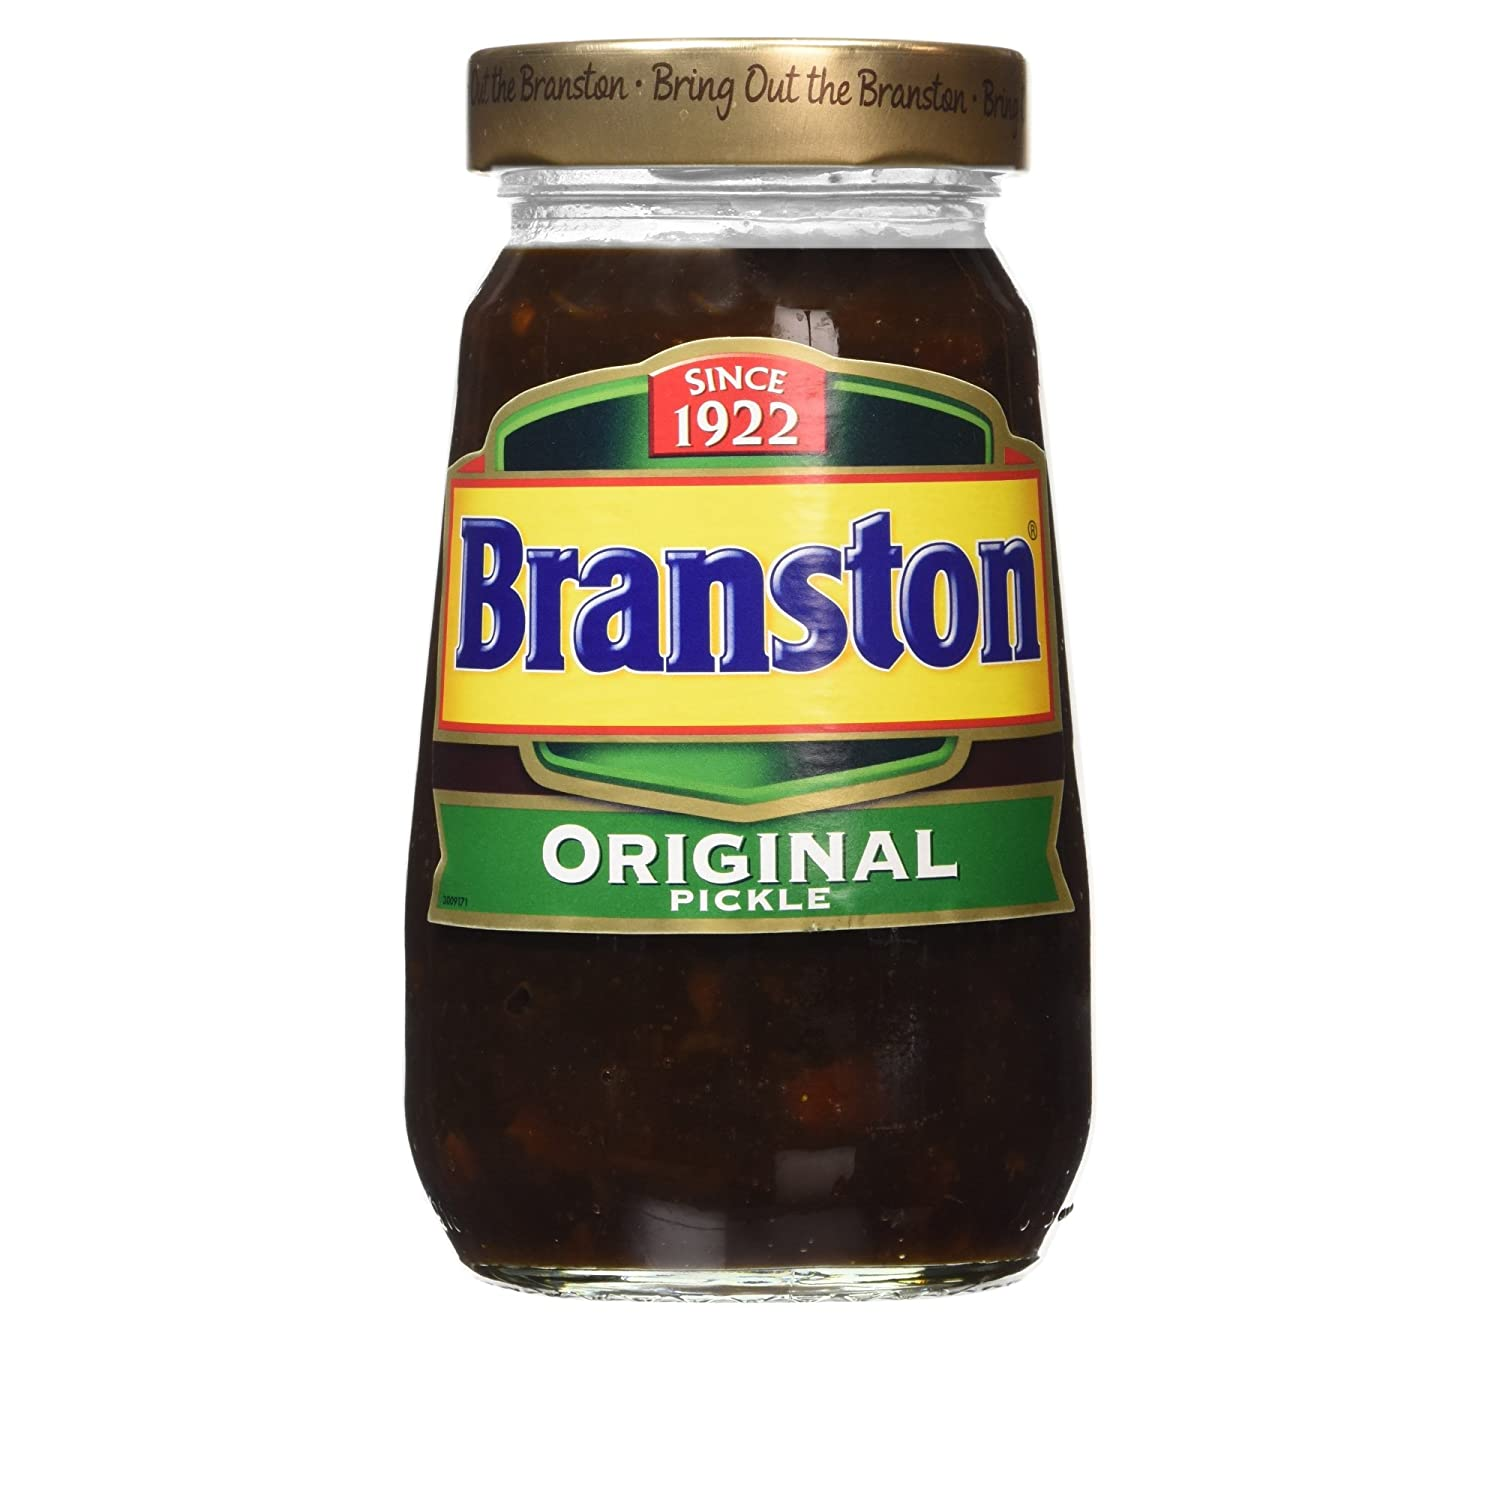 Original Branston Pickle Imported From The UK England The Very Best Of Original British Pickle The Undisputed Leading Brand Of British Pickle Perfect In A Cheese Sandwich Delicious Instantly Recognizable Mixture Of Spice, Sweetness & Crunch